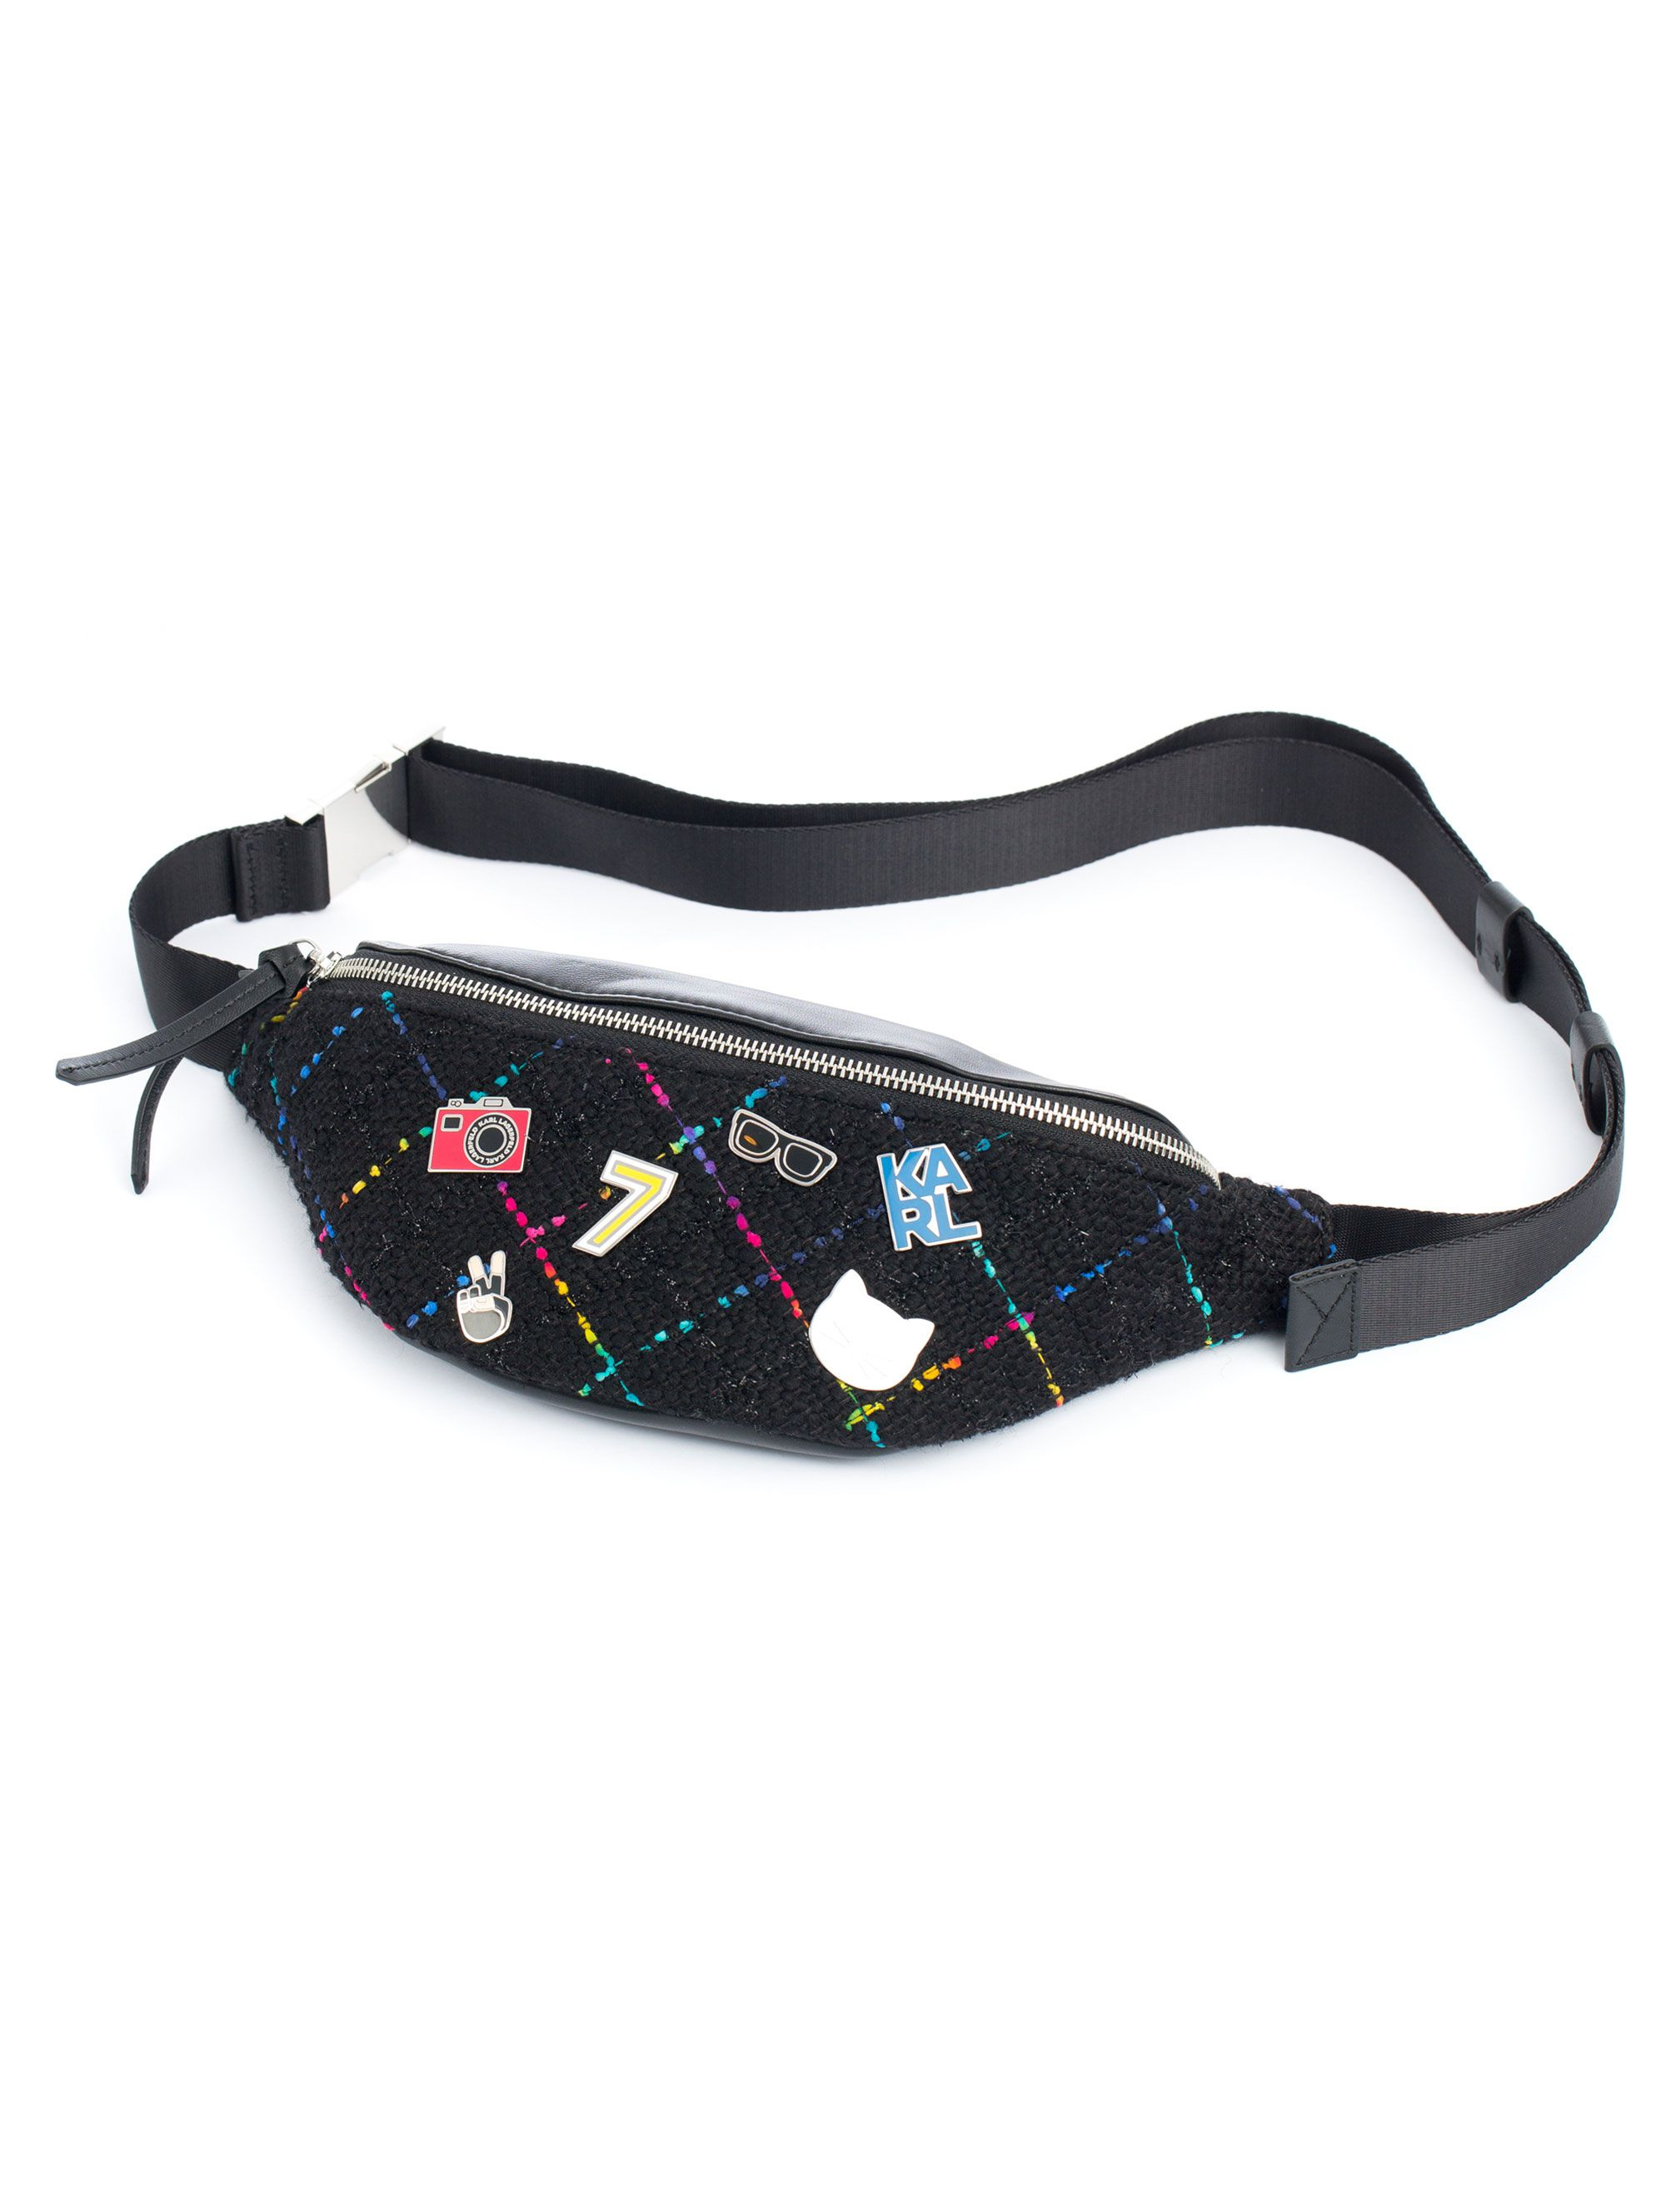 Karl Lagerfeld K/Studio Waist Bag with Appliques